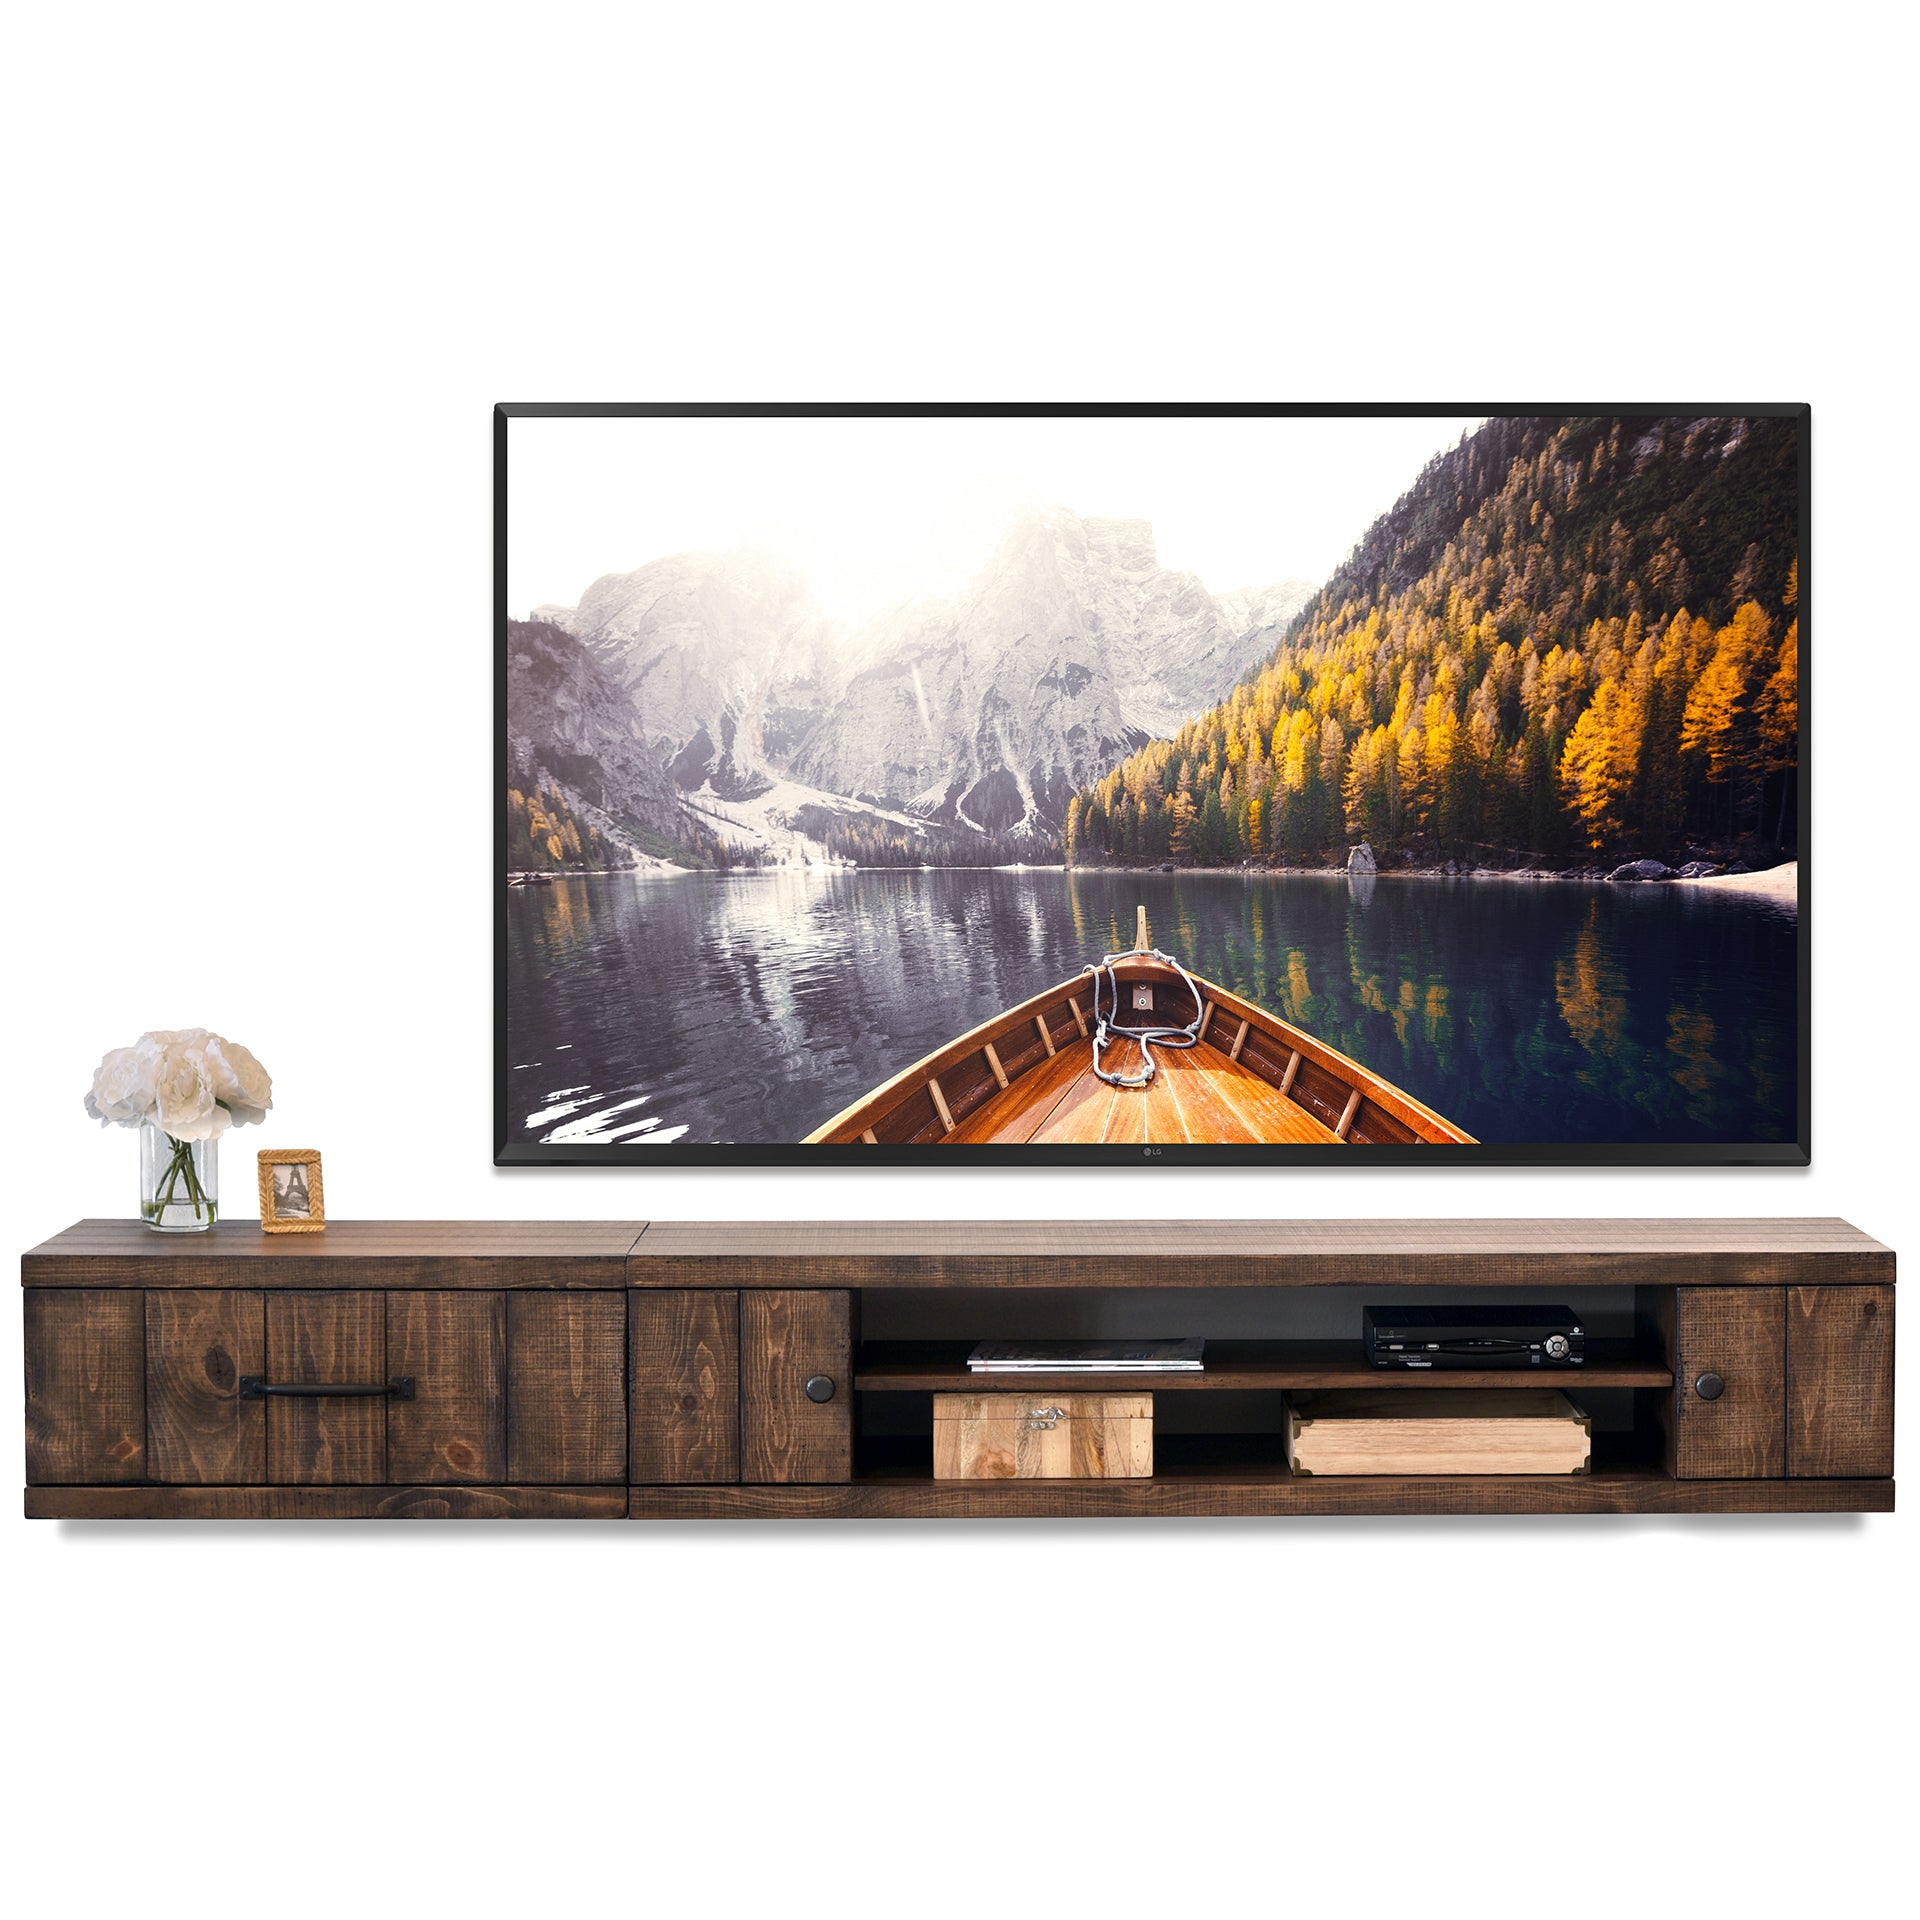 Rustic Barn Wood Style Floating Tv Stand Wall Mount Entertainment